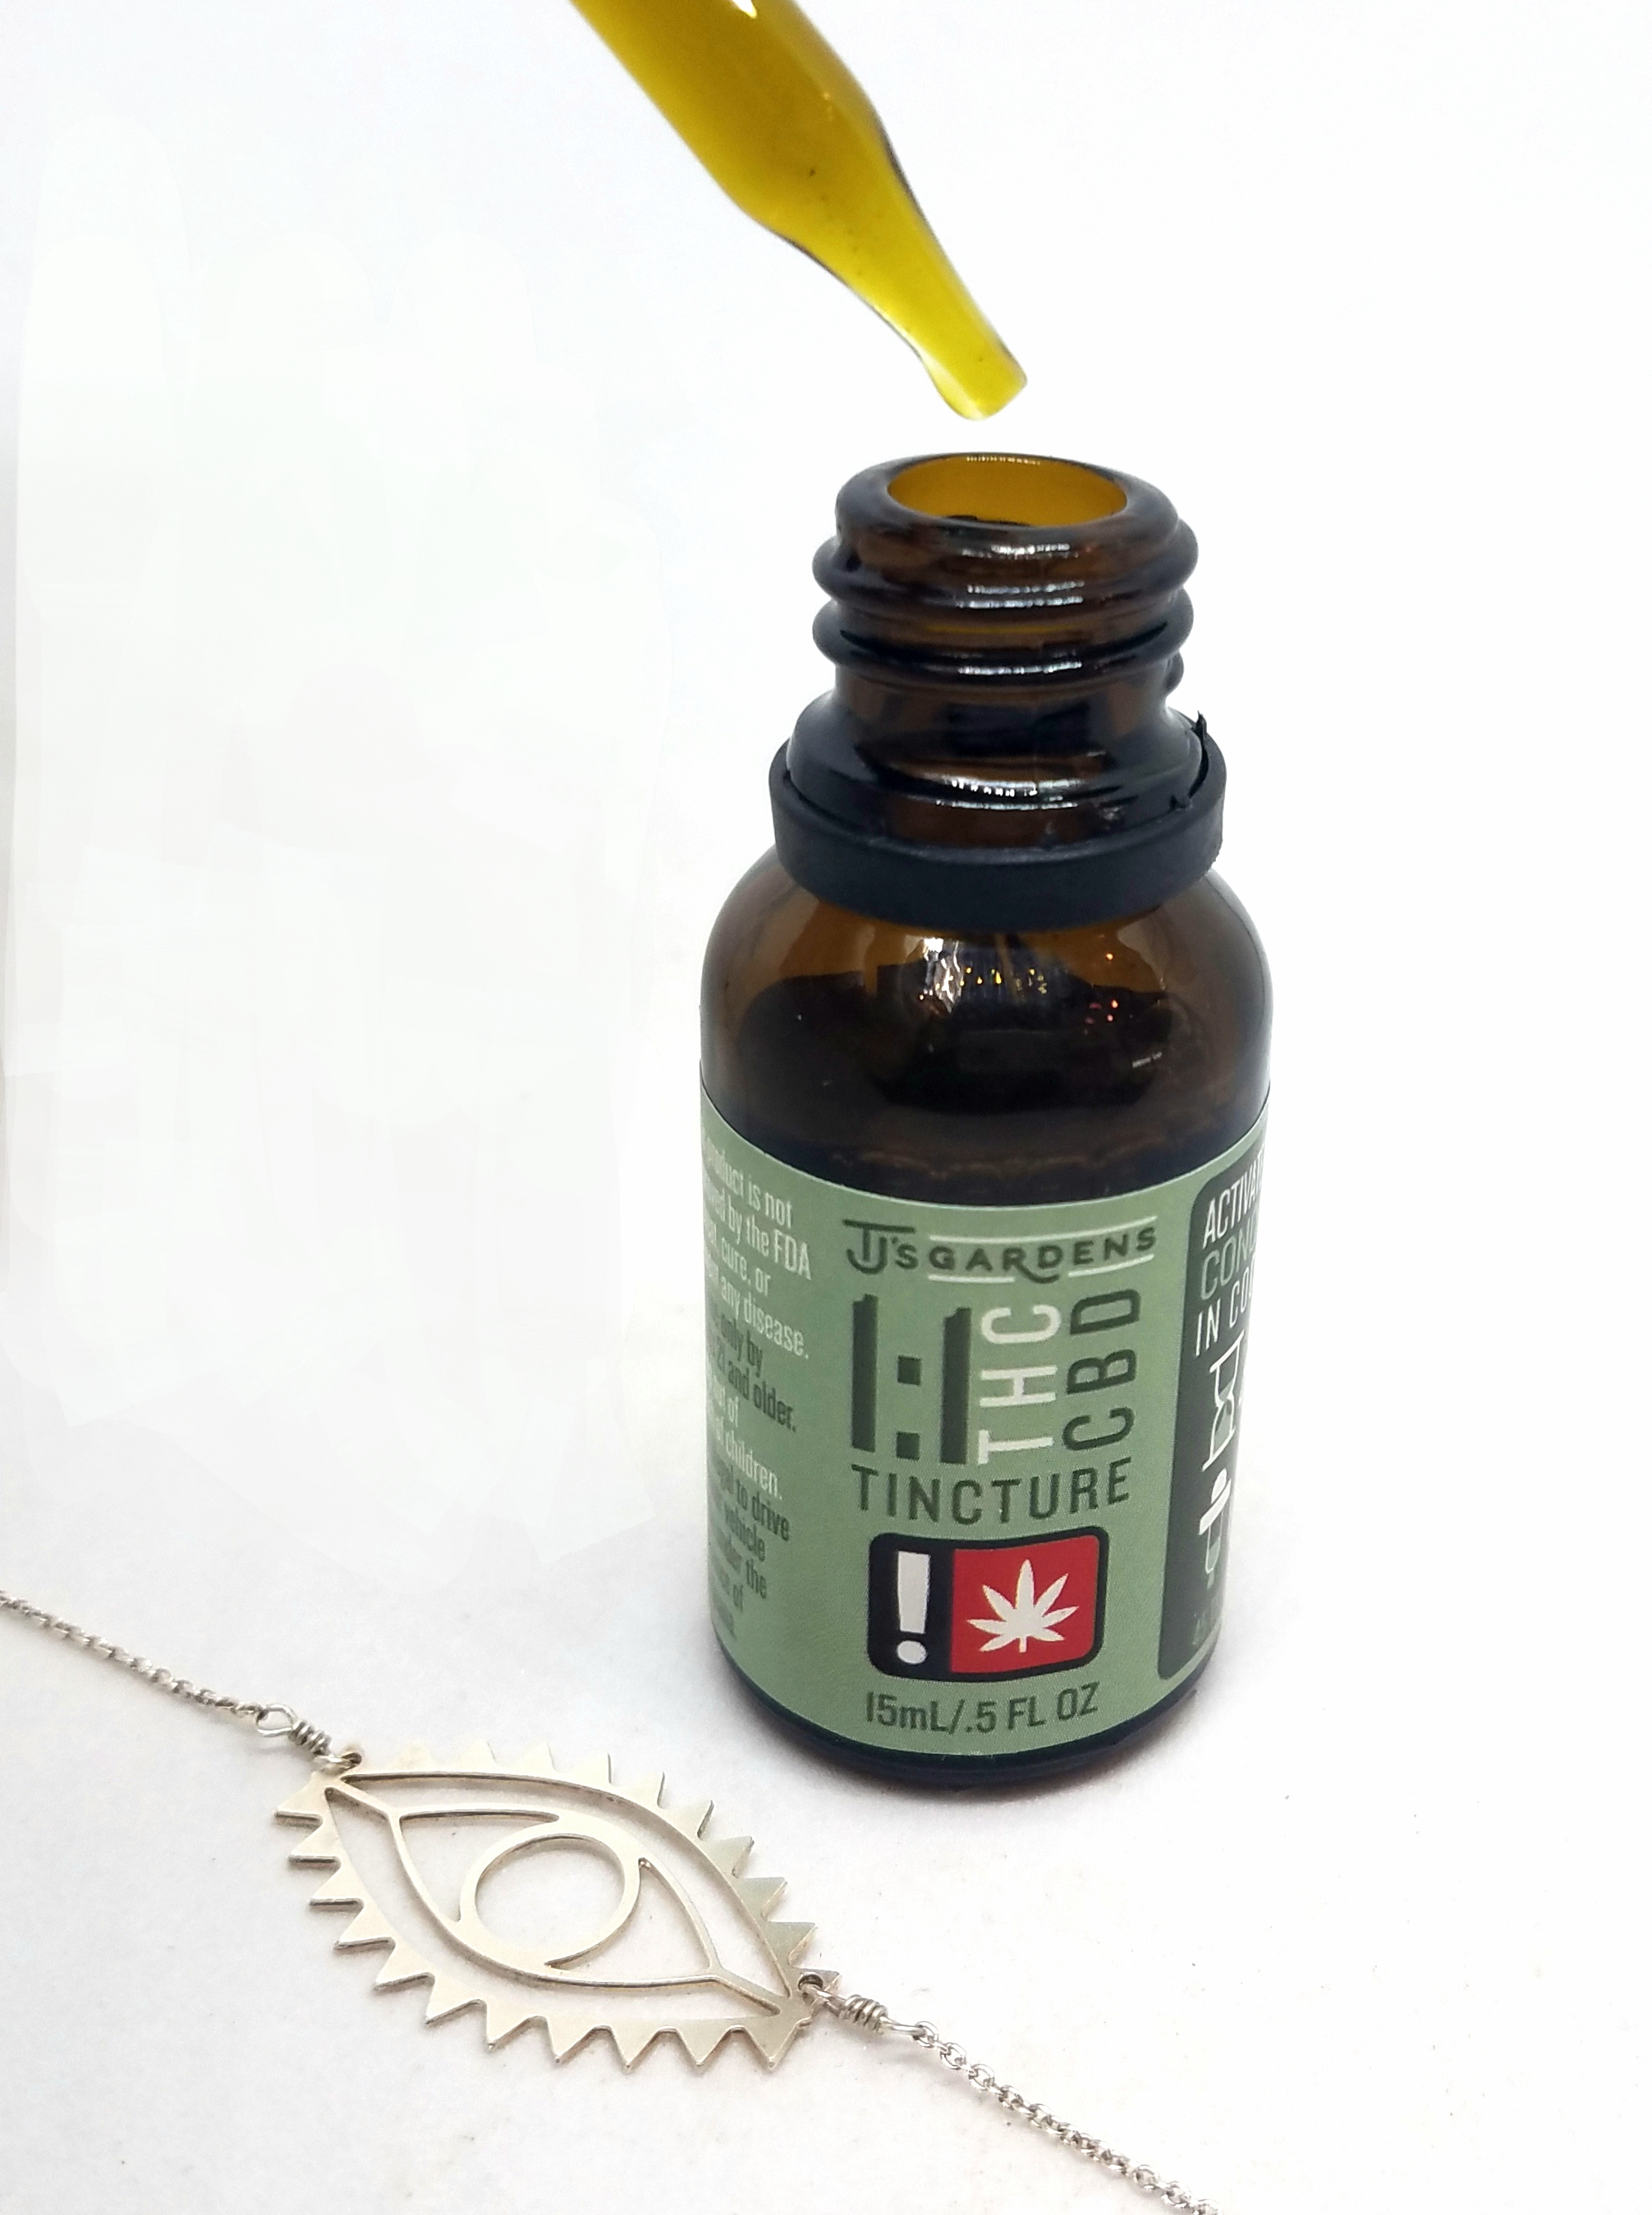 1:1 THC CBD Tincture produced by TJ's Gardens